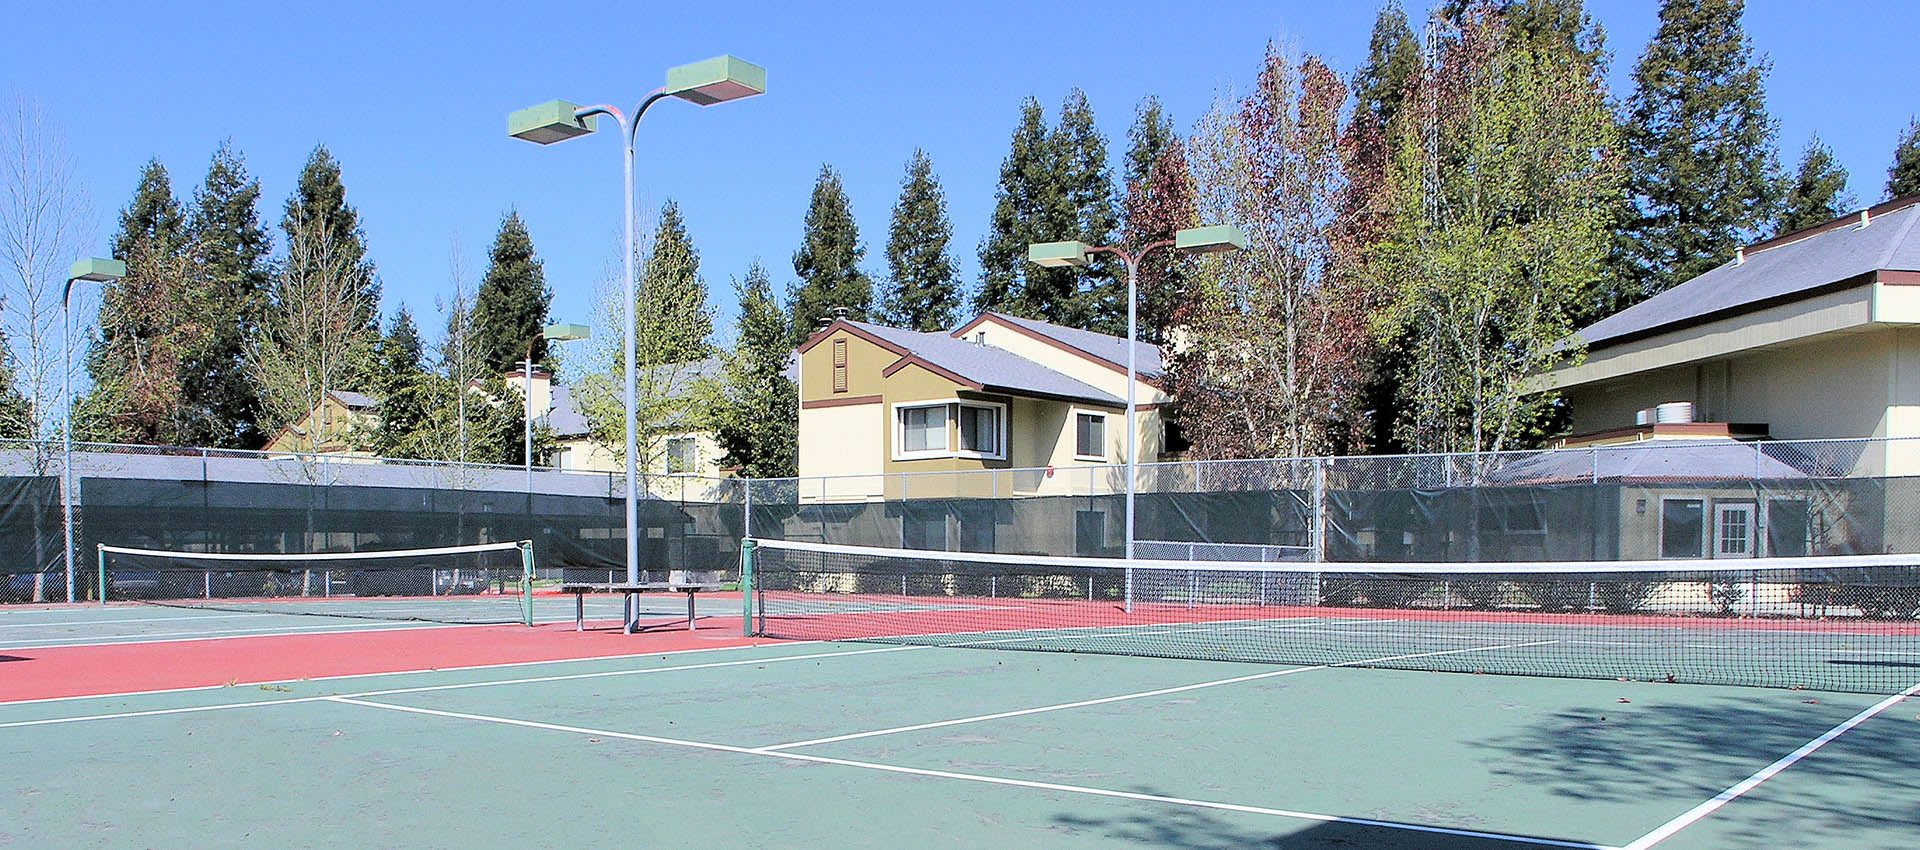 Tennis court at Park Ridge Apartment Homes